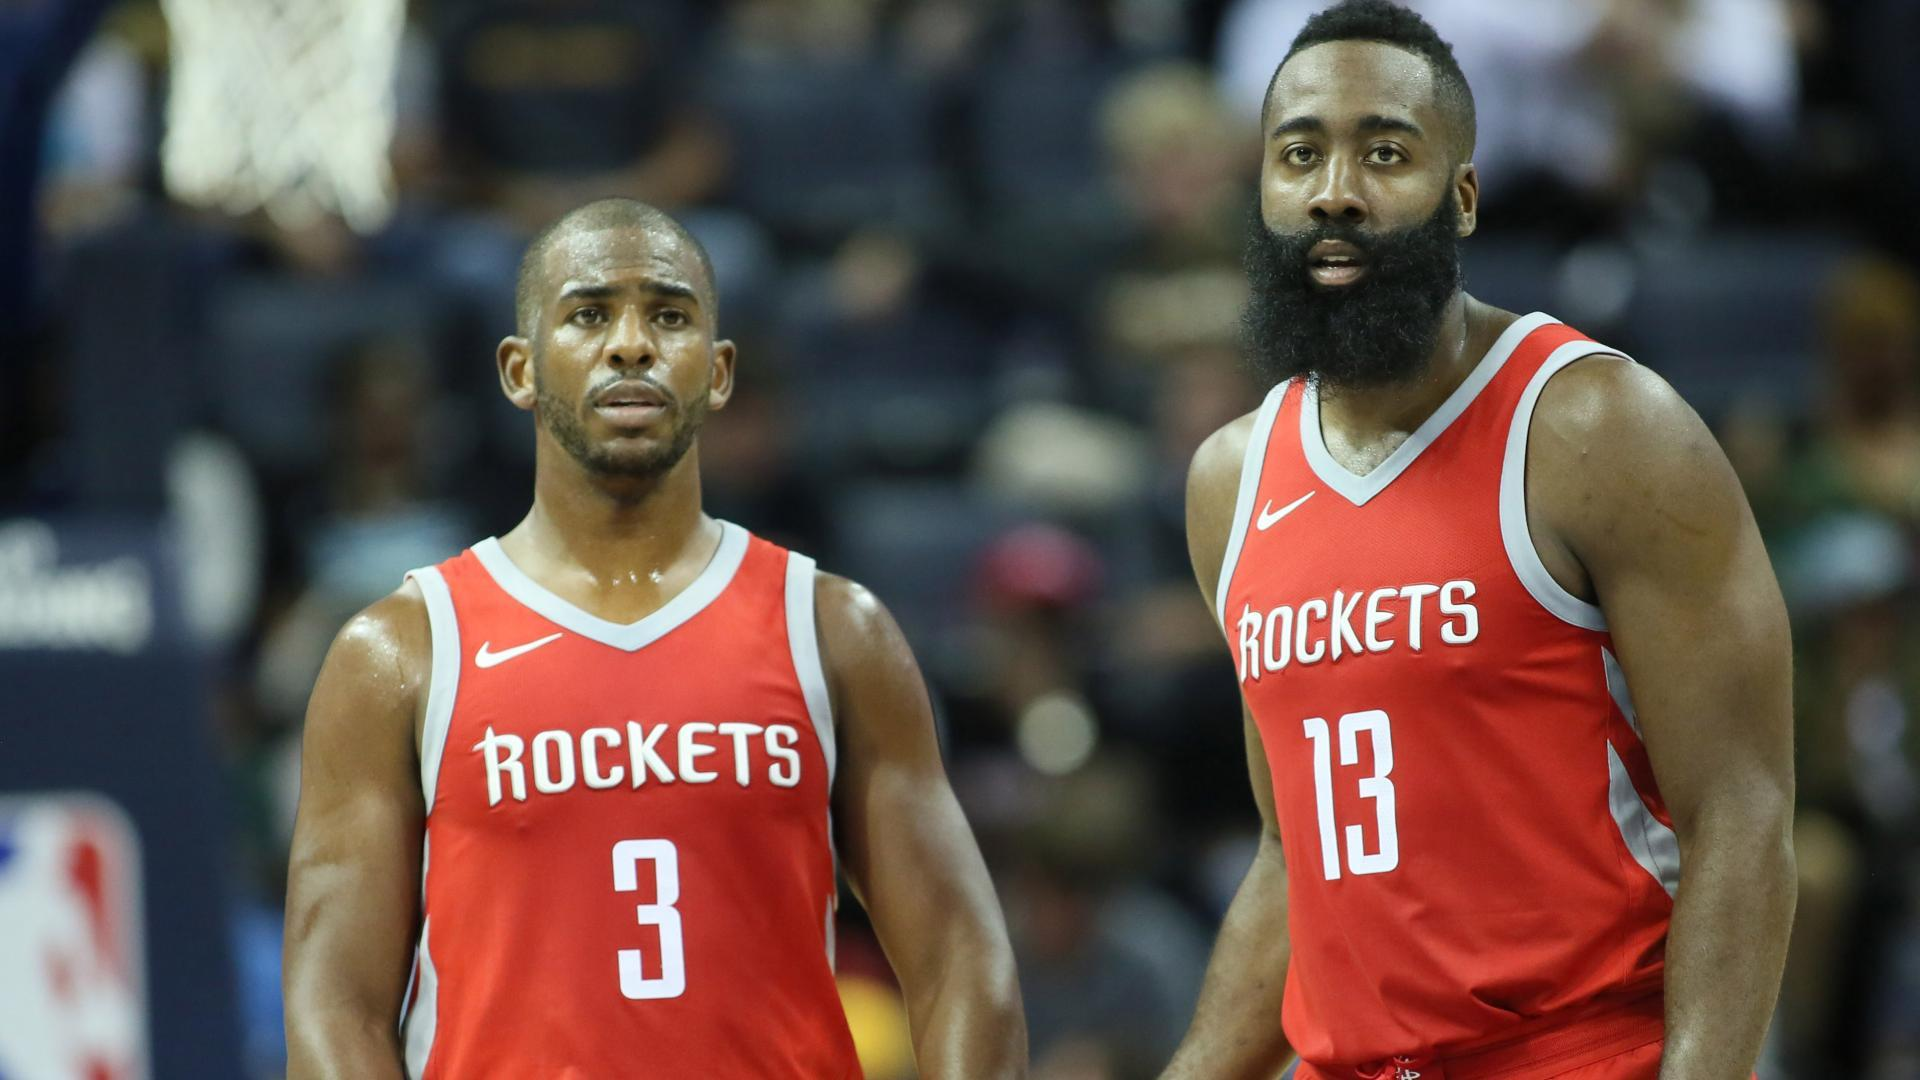 After record-breaking season, Rockets launch into drive for ...